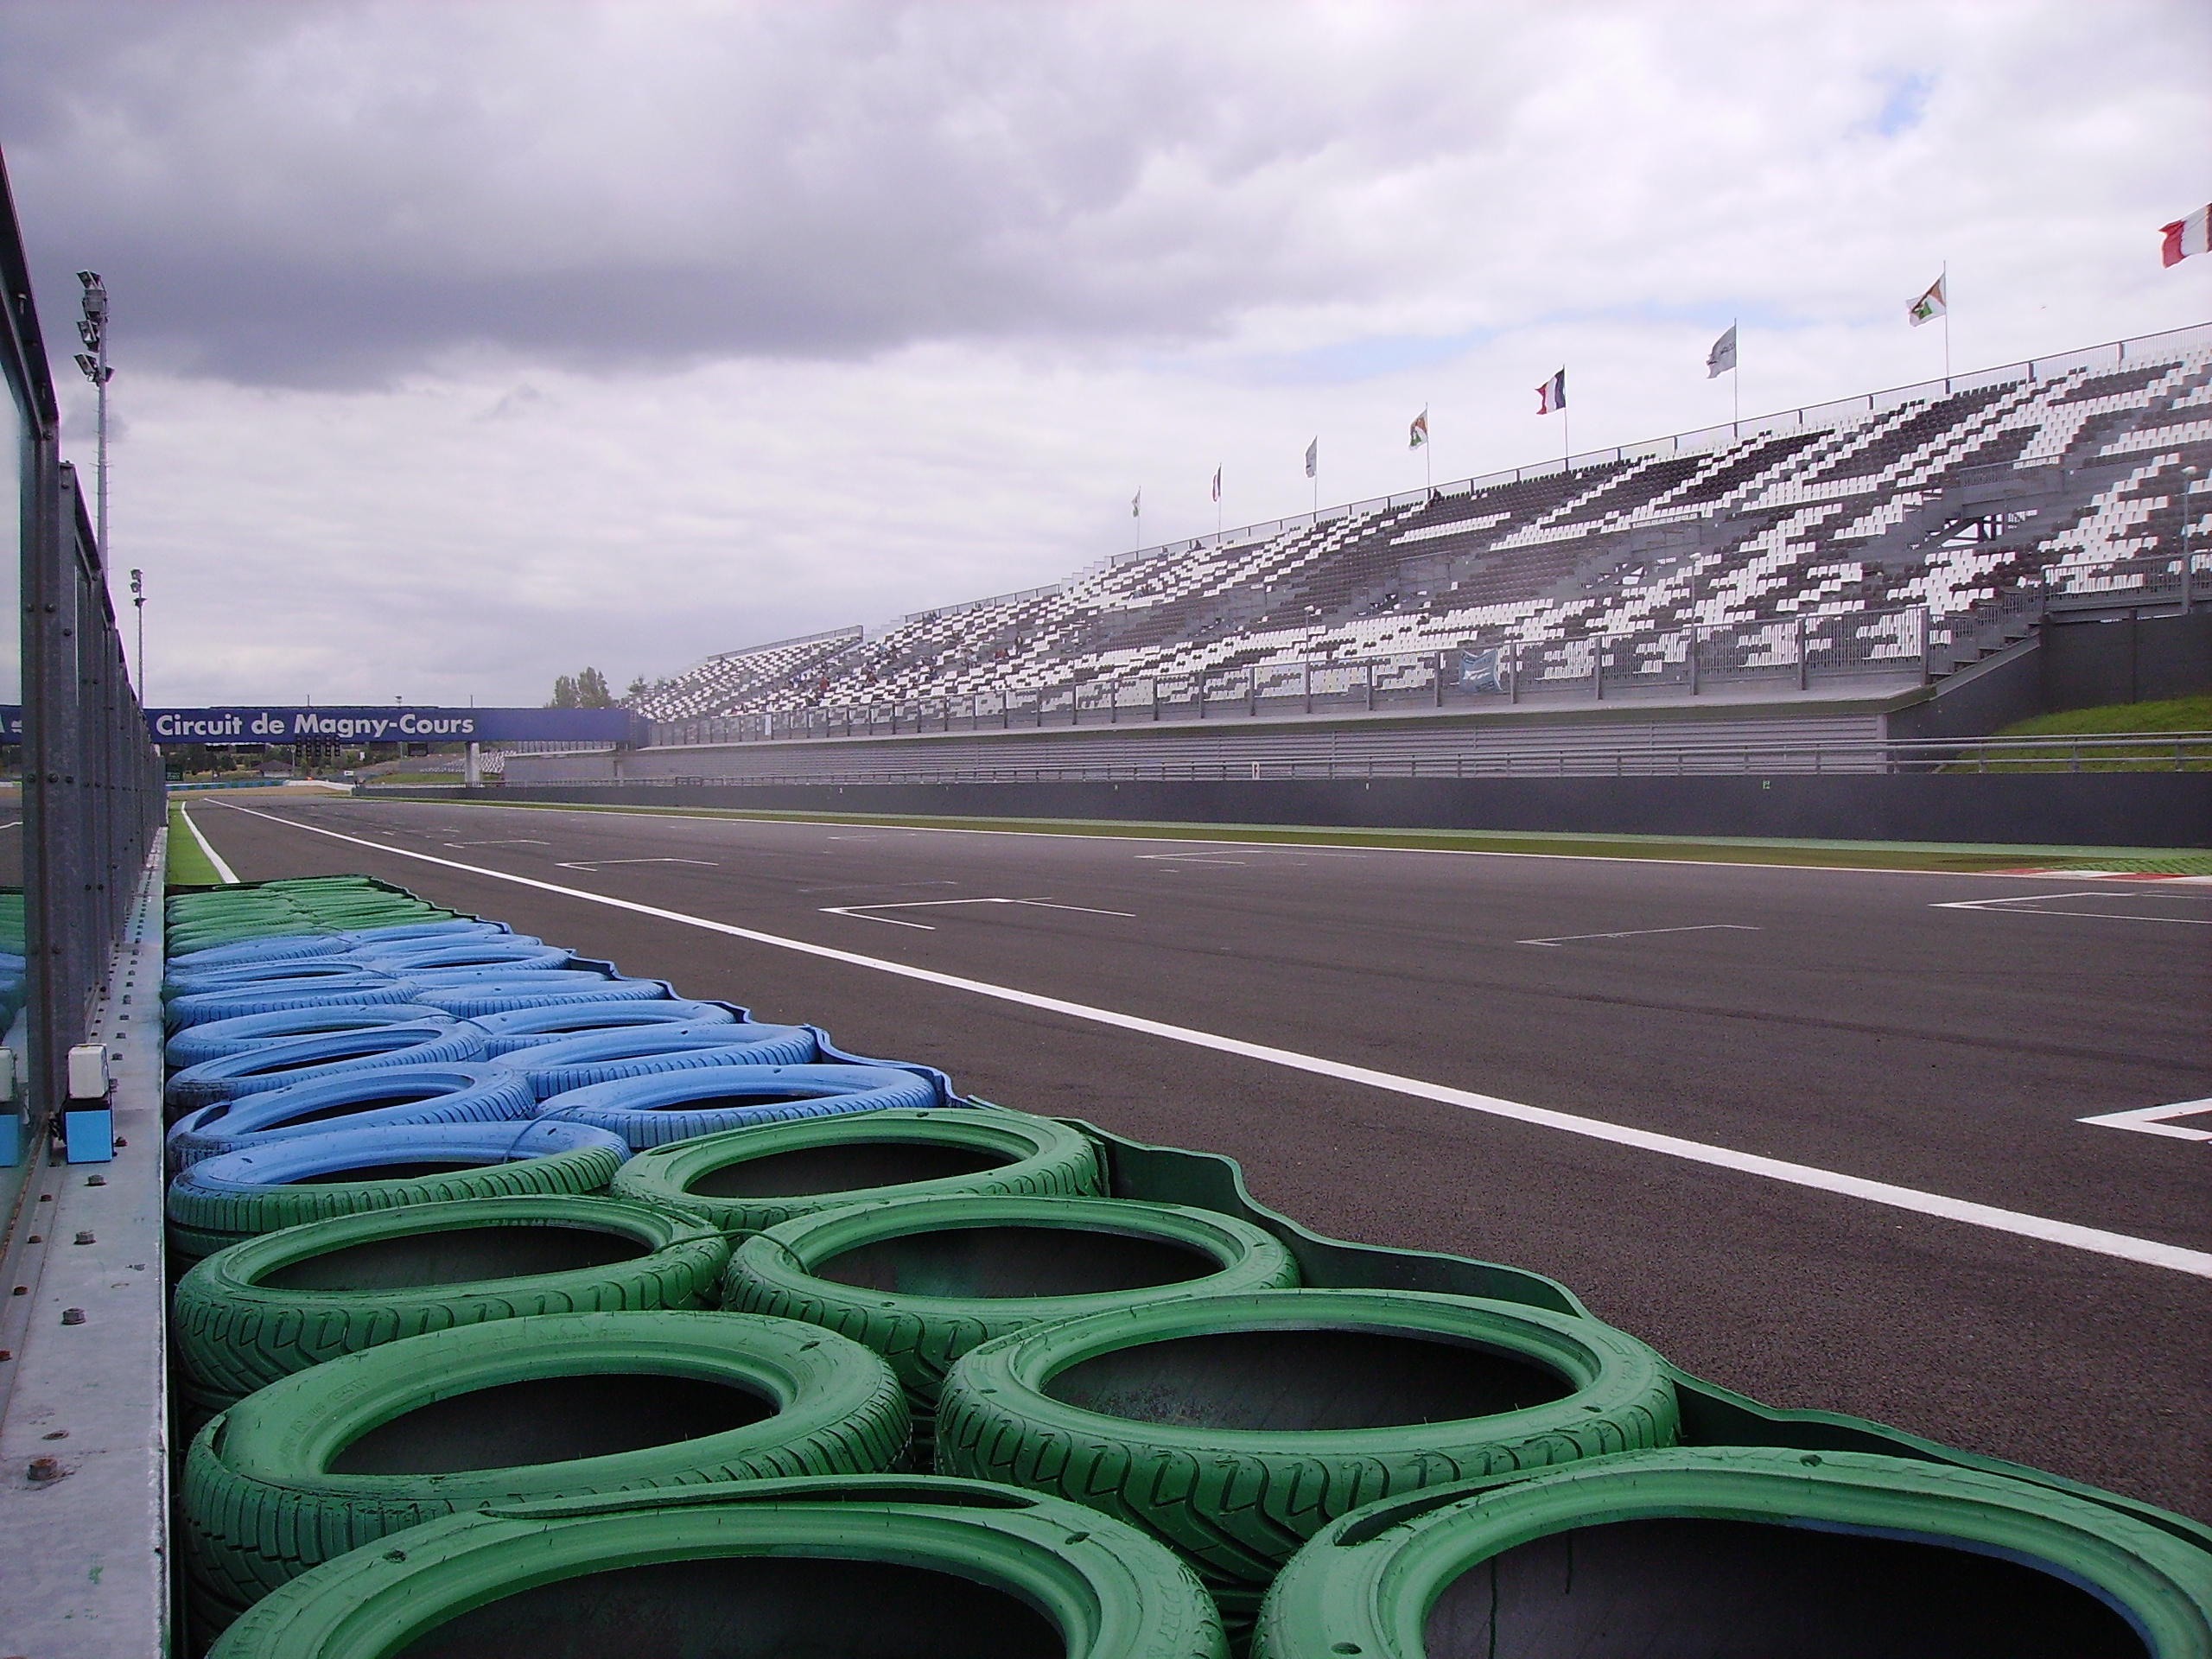 file track near the stands circuit de nevers magny cours. Black Bedroom Furniture Sets. Home Design Ideas